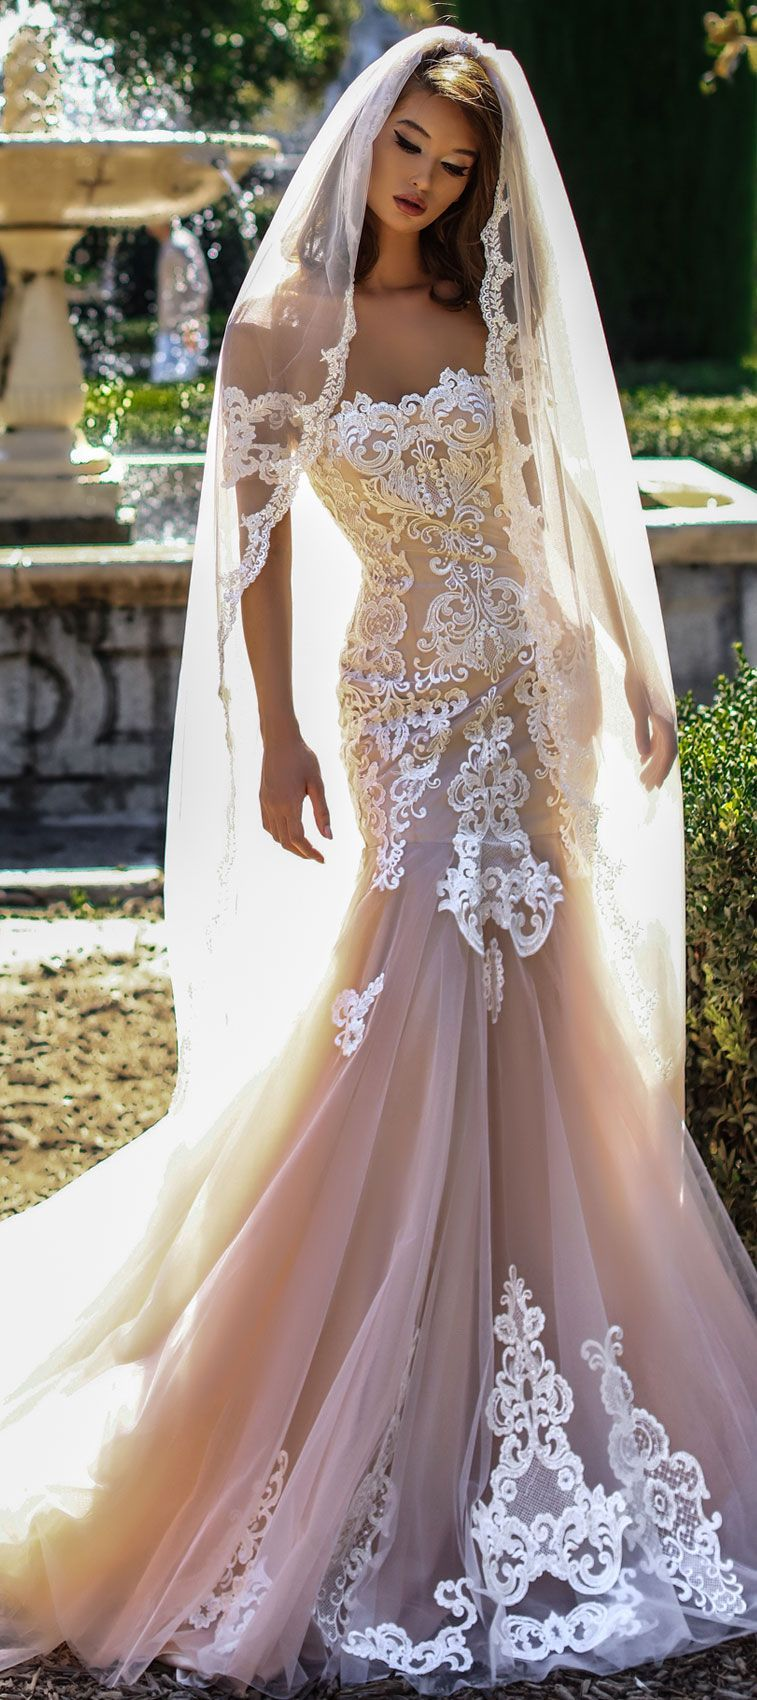 Beautiful wedding gowns would look glamorous on all sorts of brides